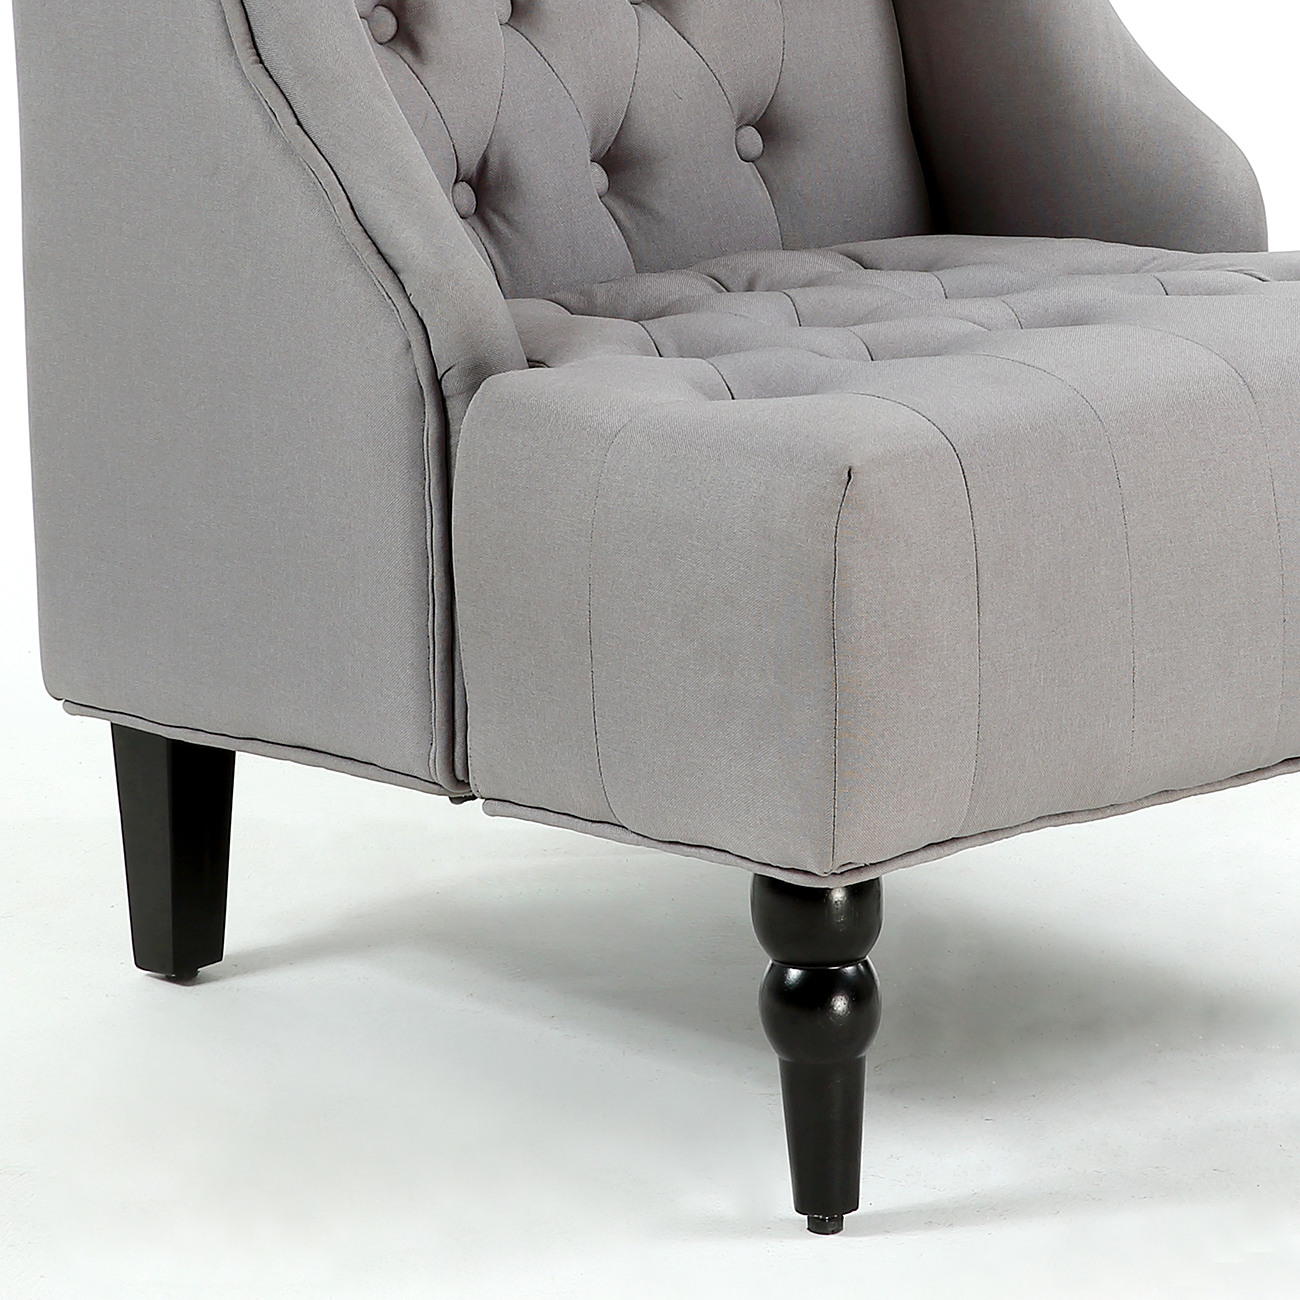 White tufted accent chair - Wingback Accent Chair Tall High Back Living Room Tufted Nailhead Gray